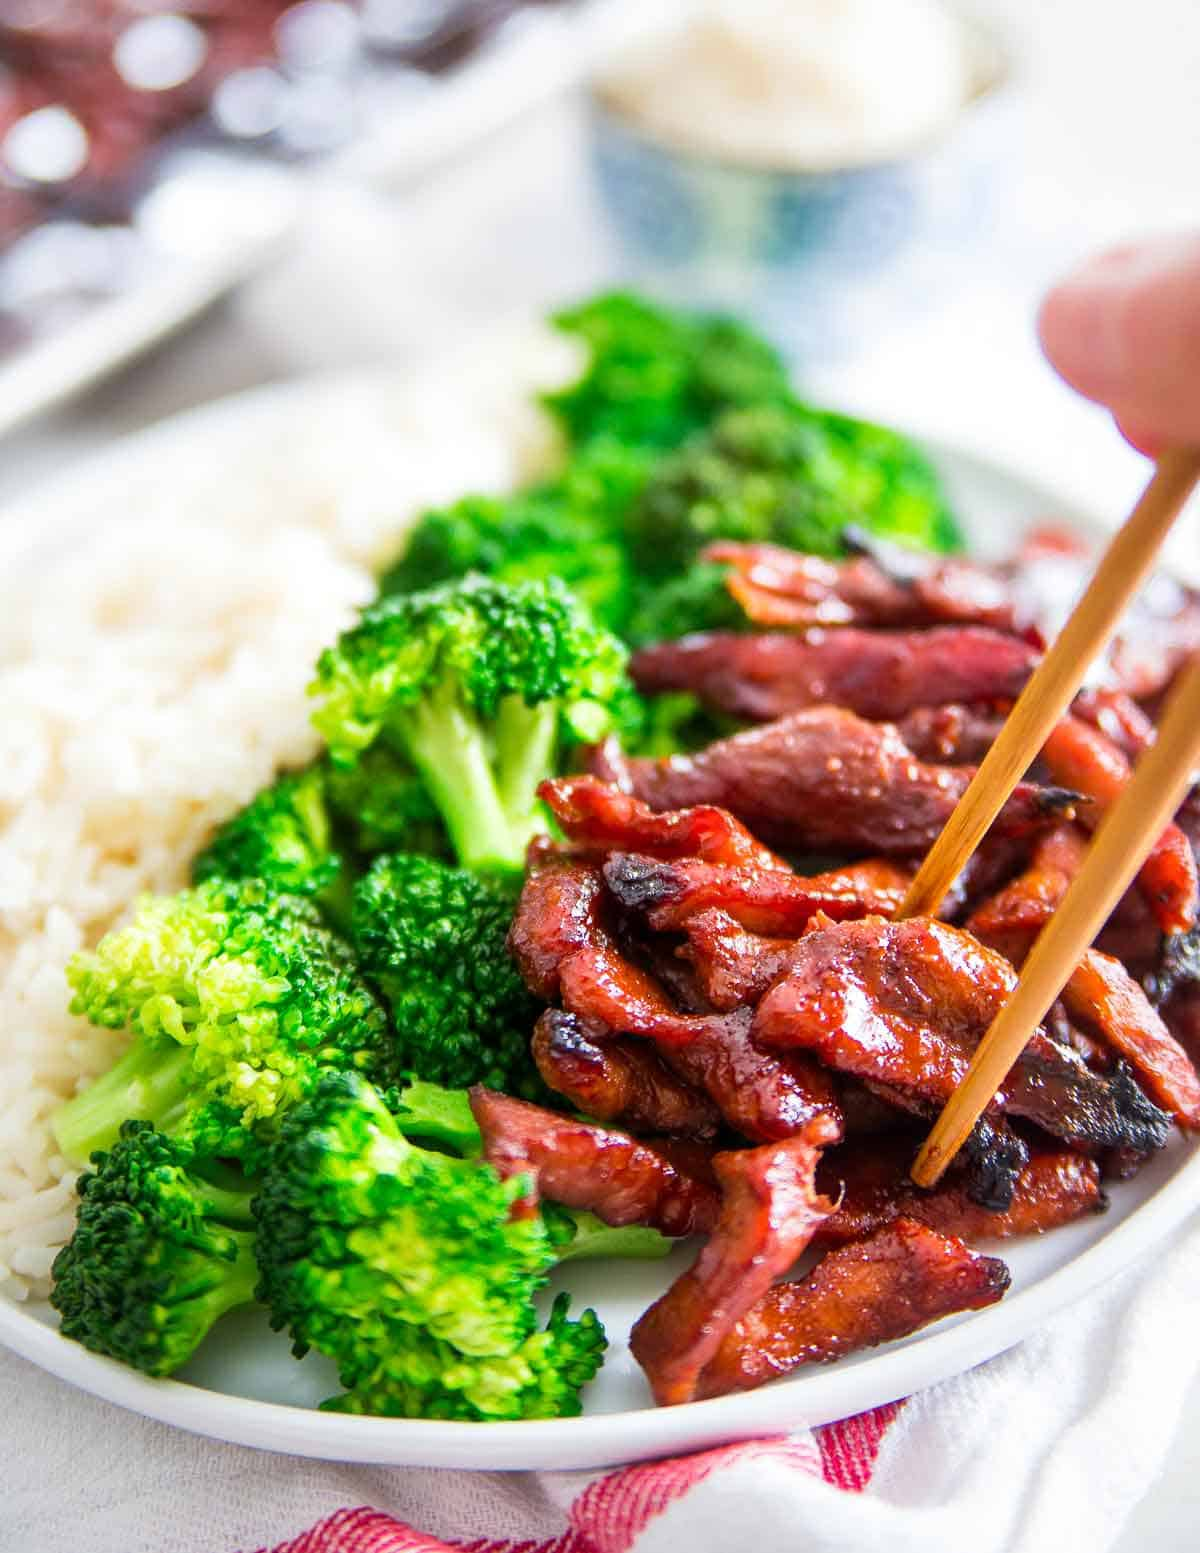 These Chinese boneless spare ribs are just like the takeout recipe. Sticky and sweet with crispy edges and that deep red color. Learn how easily you can make them at home!